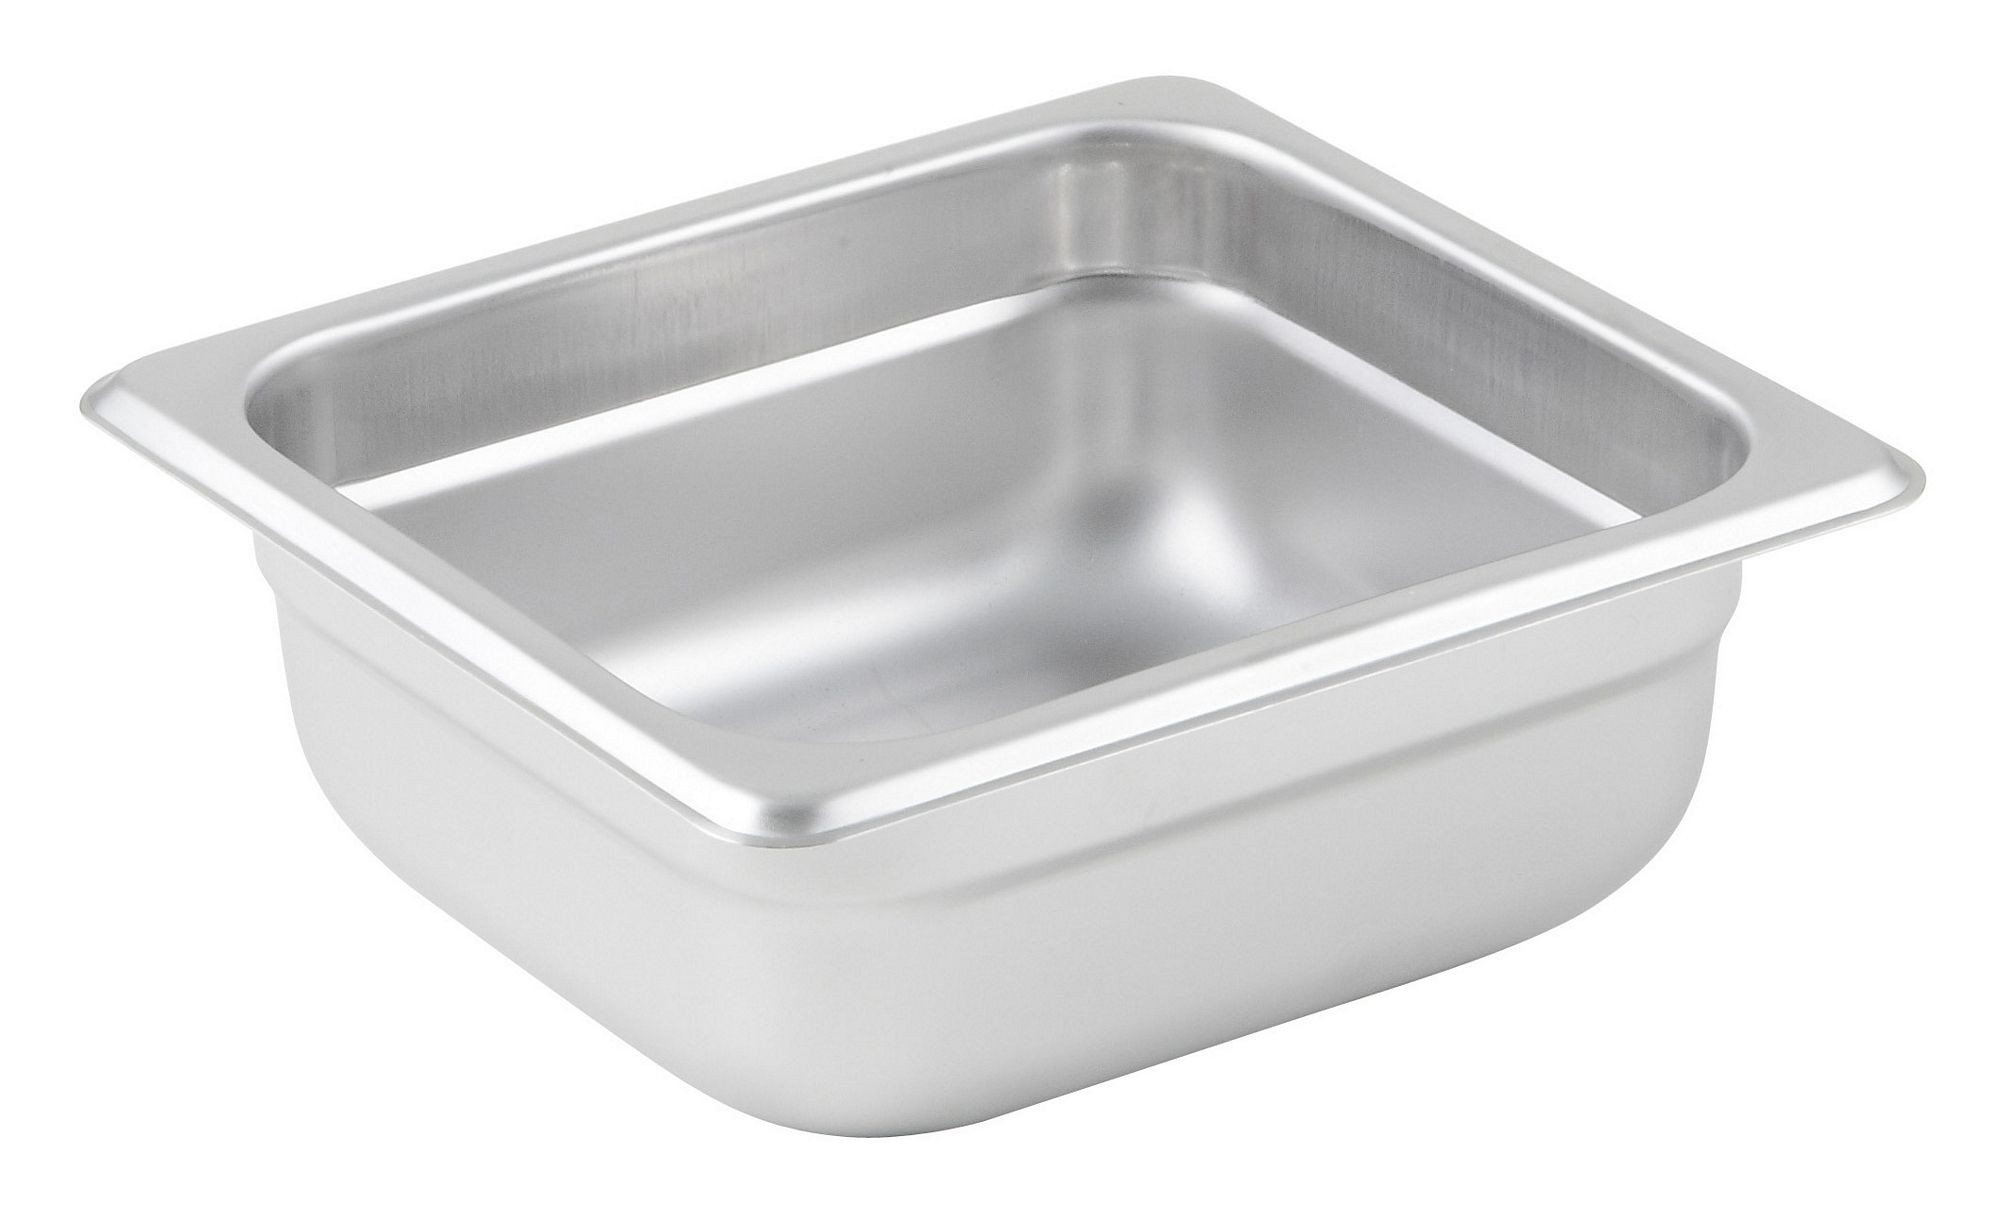 "Winco SPJM-602 1/6 Size Anti-Jam 24 Gauge Steam Table Pan 2-1/2"" Deep"